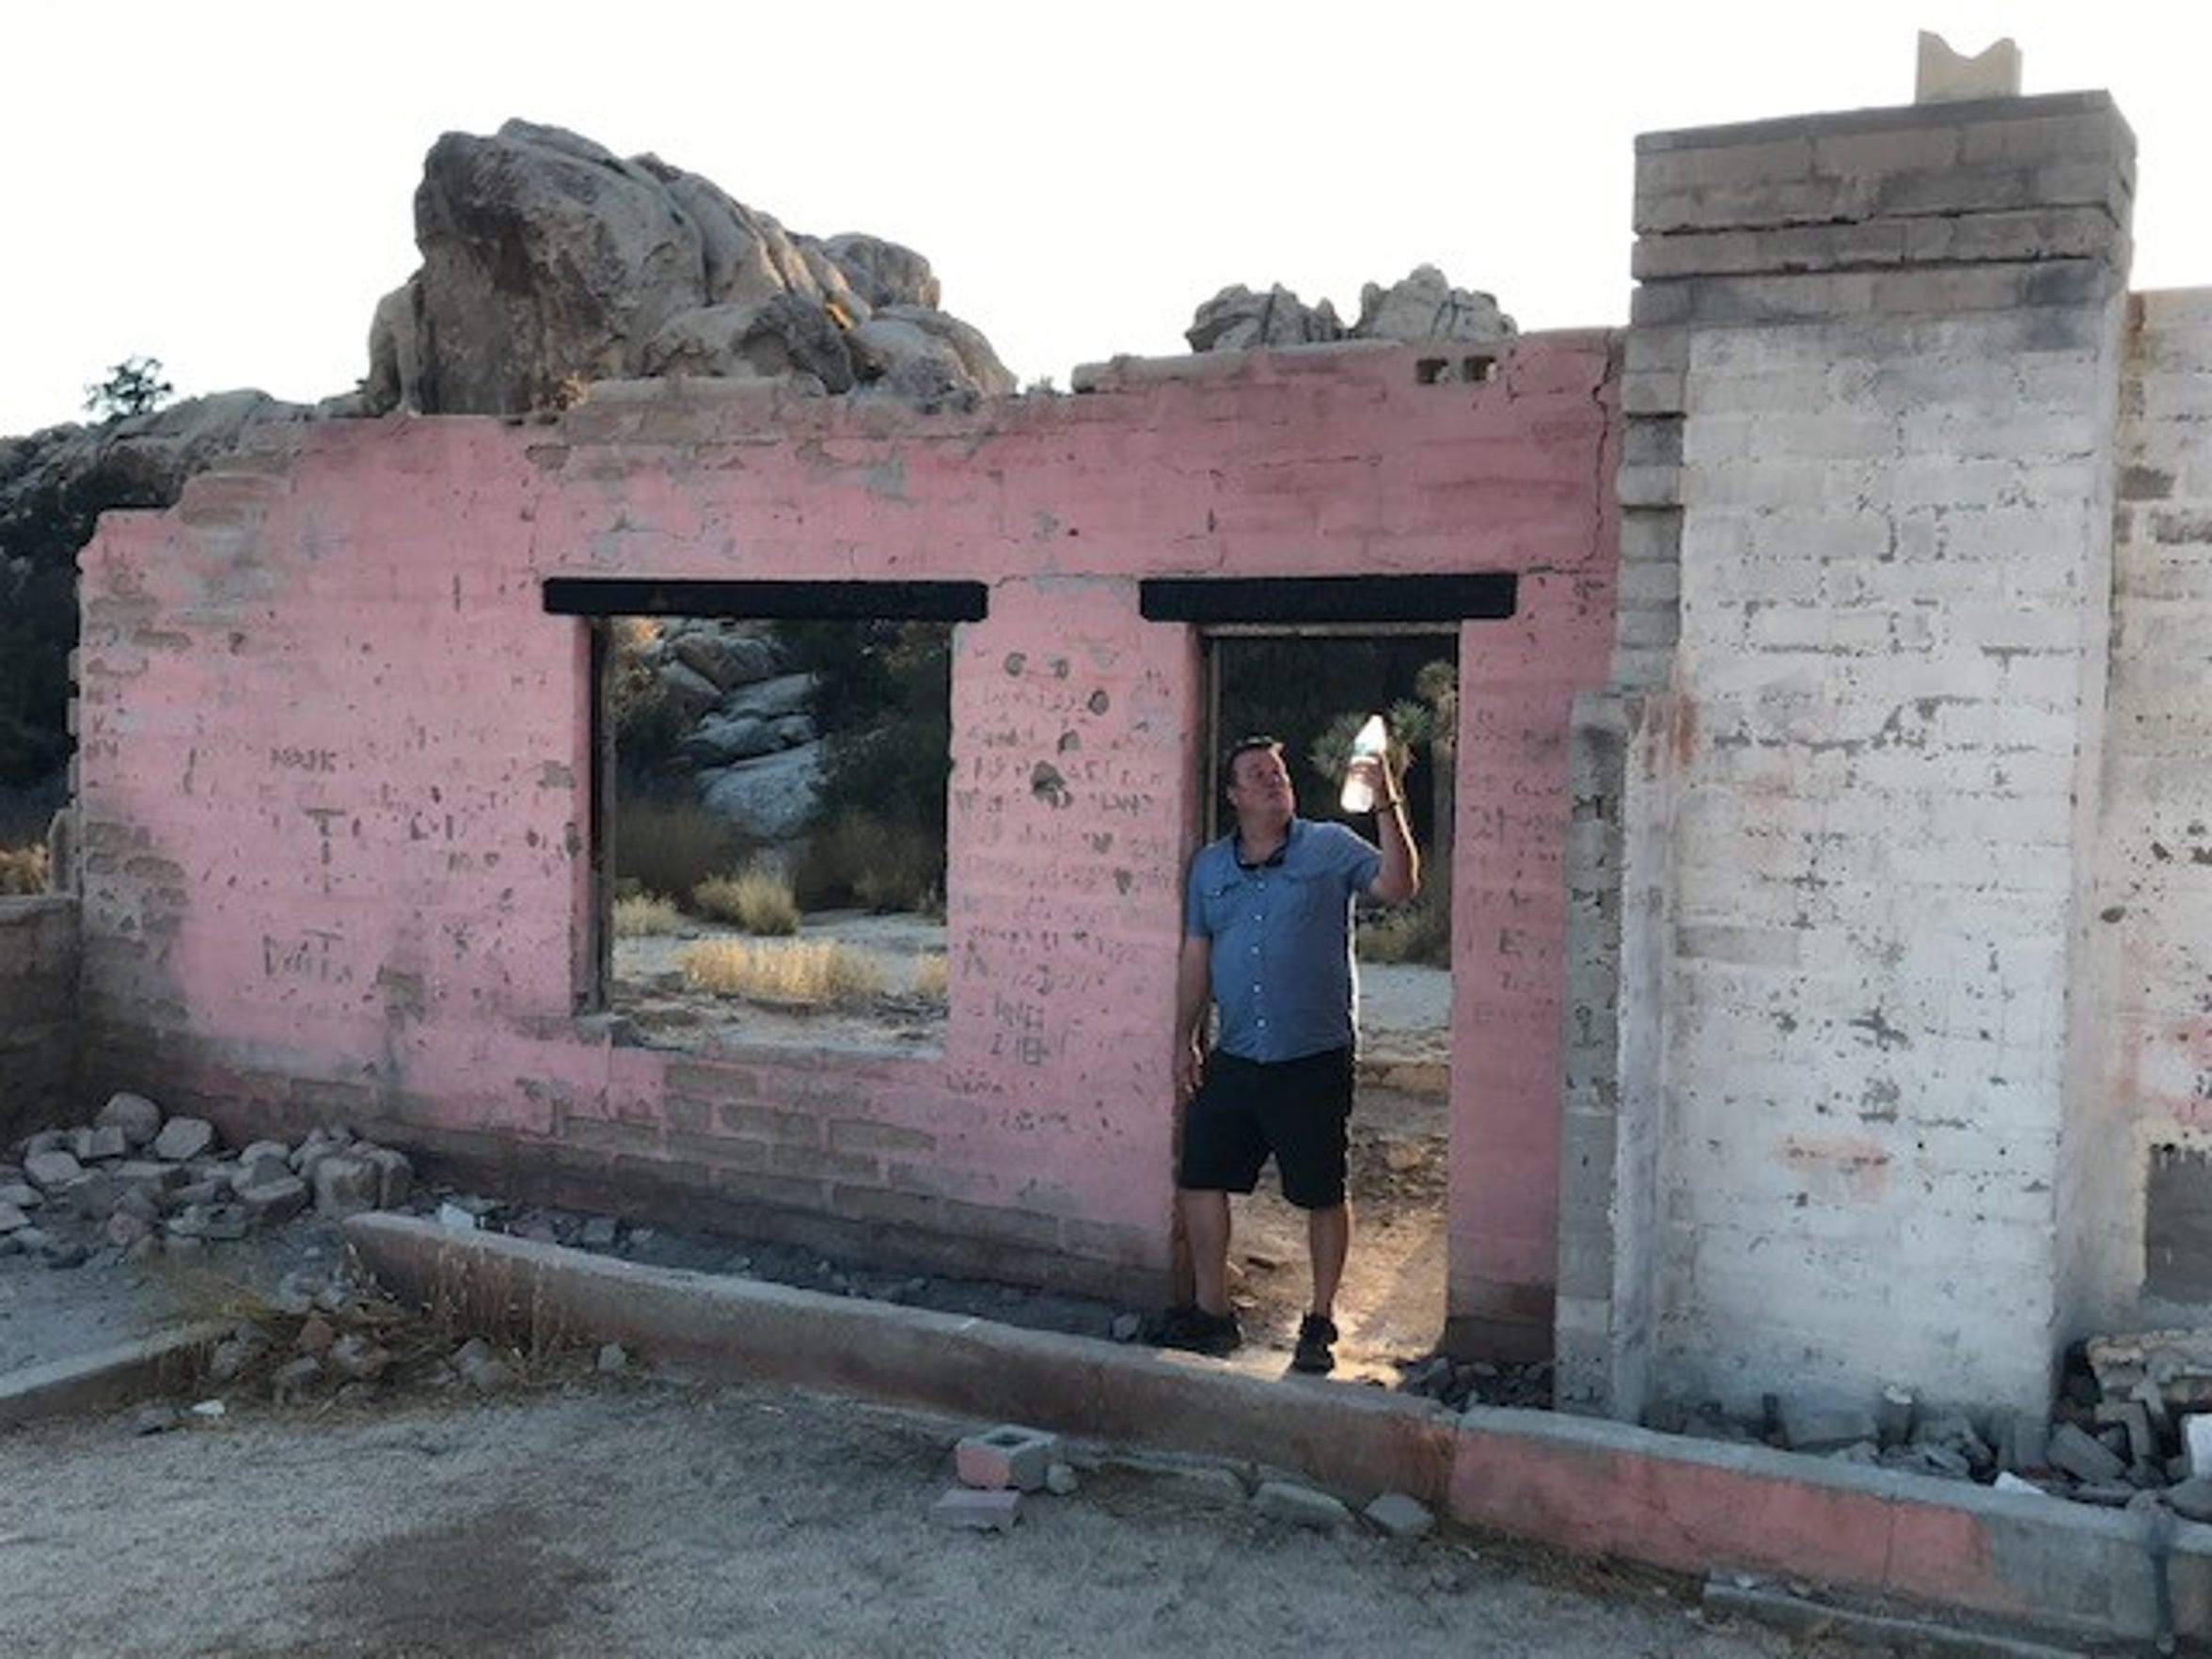 UC Riverside doctoral candidate Todd Luce stands in the remnants of the Bagley-Ohlson home site in Joshua Tree National Park. He is preparing a report on the history of private property in the 800,000 acre preserve.